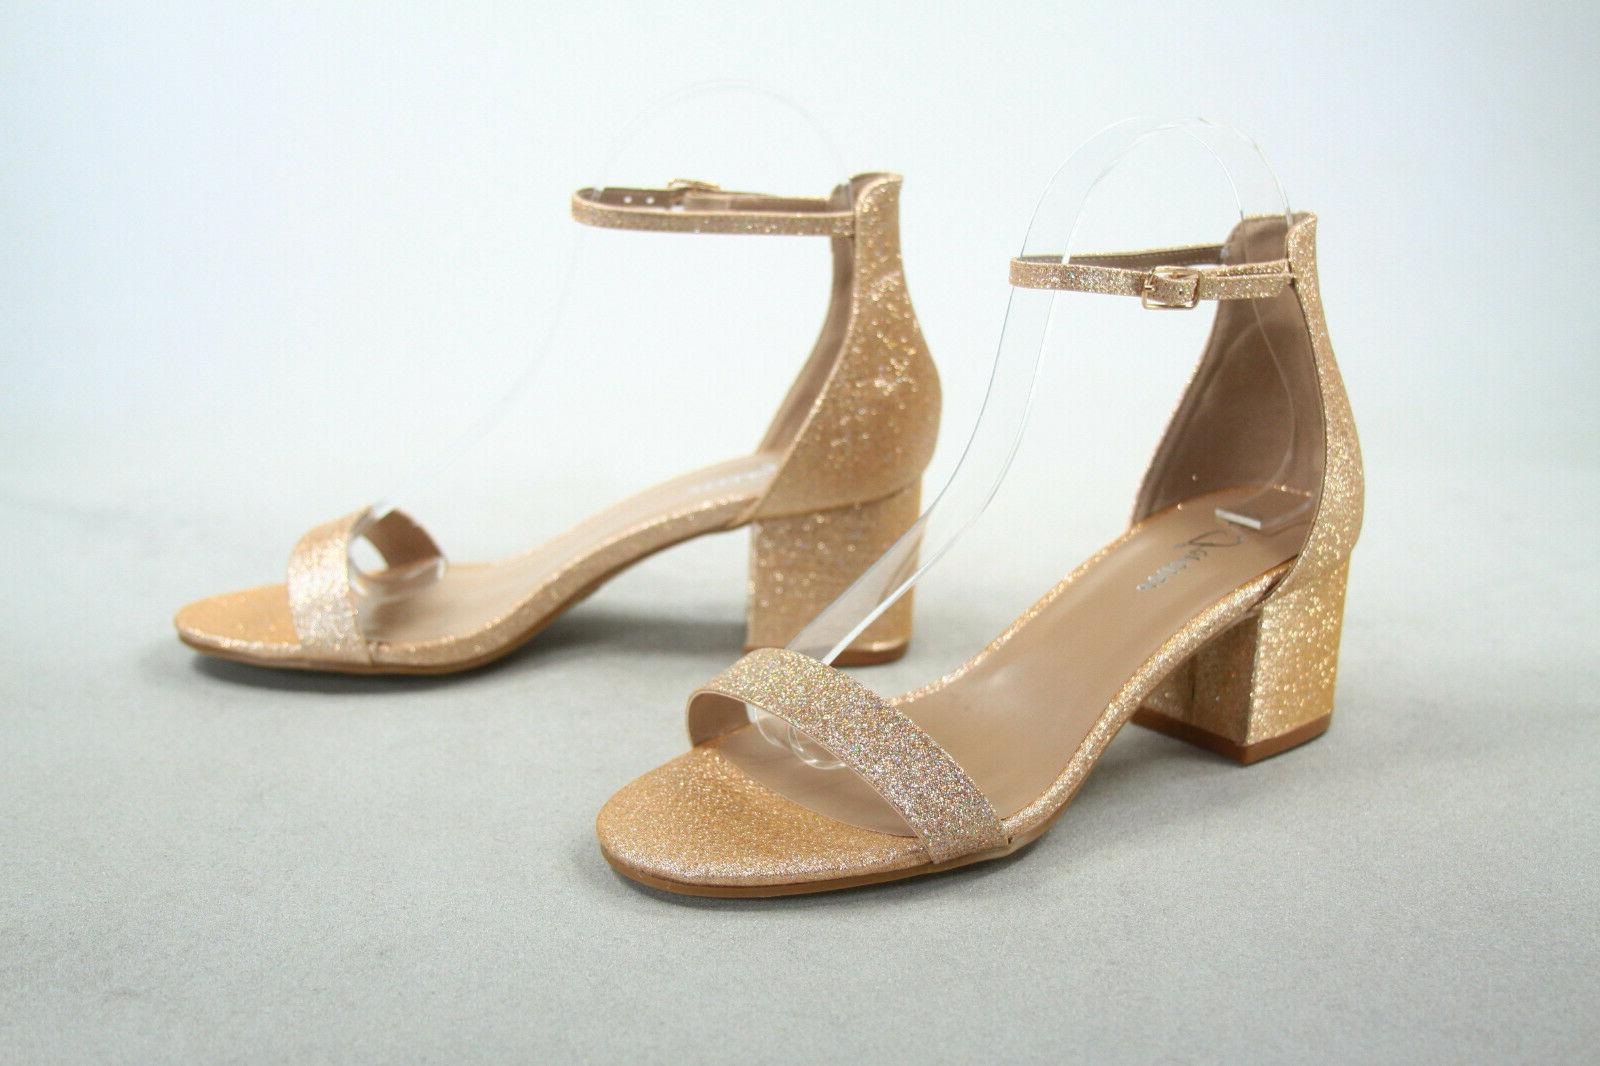 NEW Ankle Strap Low Heel Dress Sandal Shoes Size 5 -